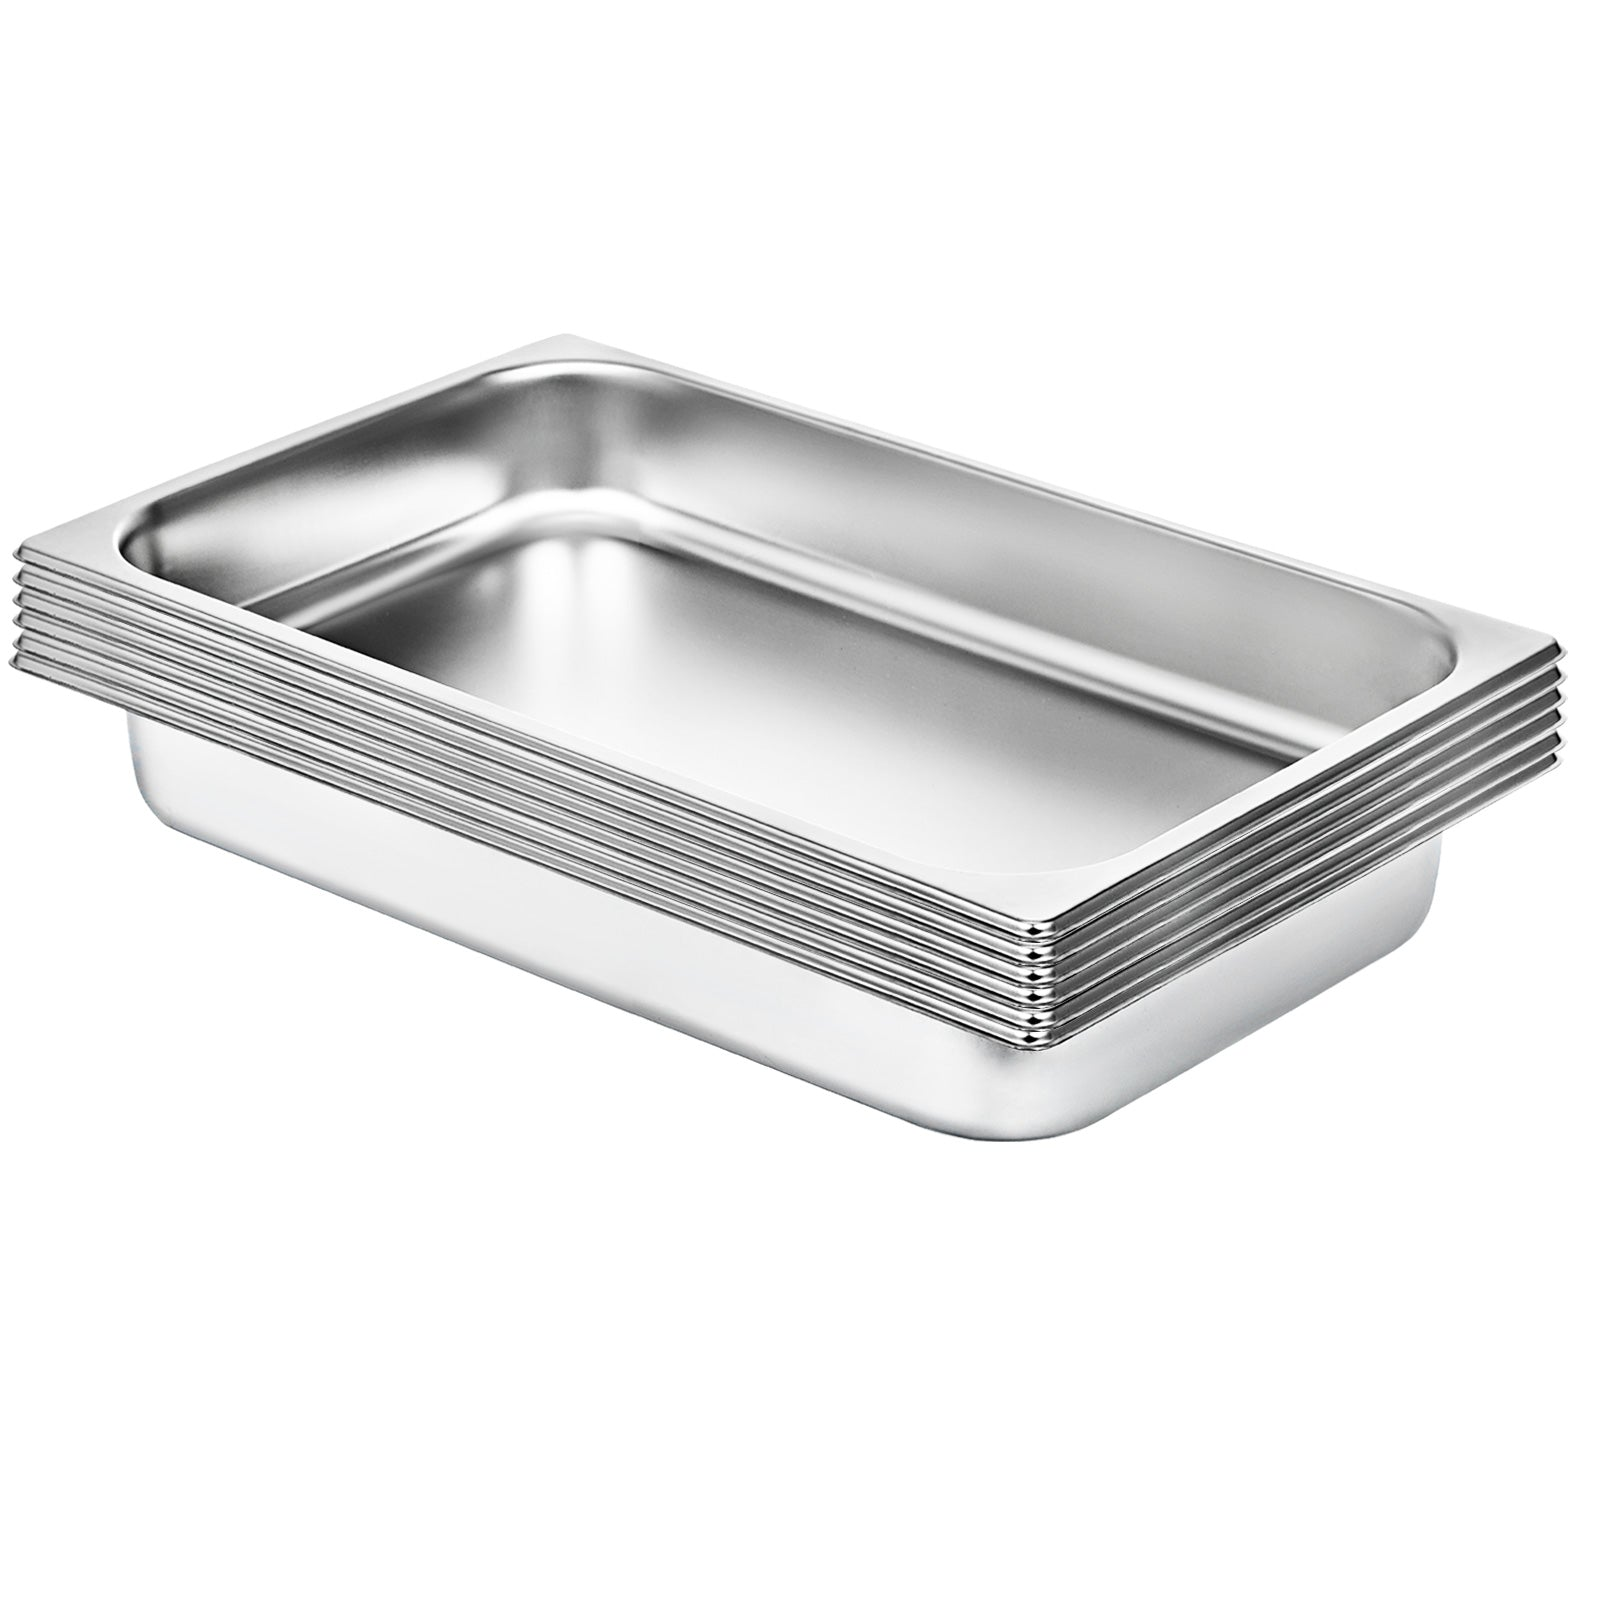 6x Gastronormbehälter Gn1/1 Tiefe 65mm Chafing Dish Gn Behälter Saladette